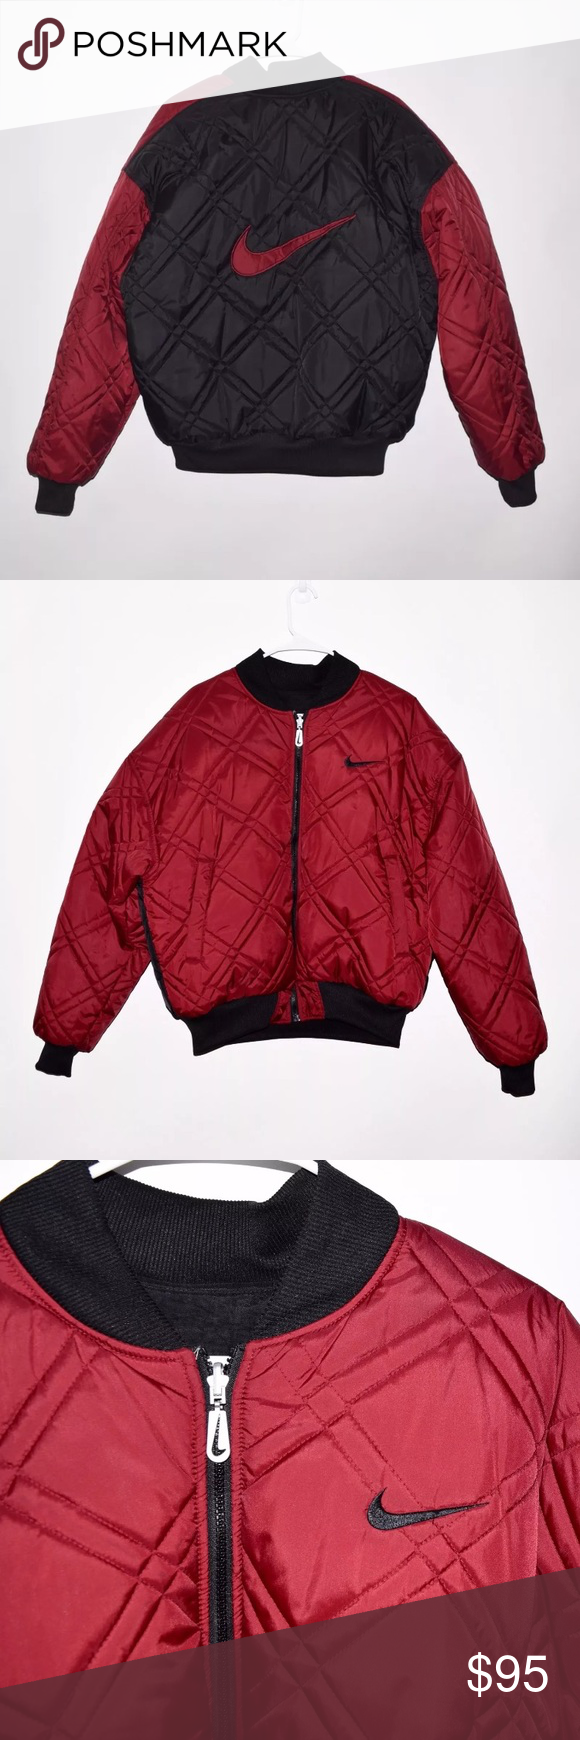 Vintage 90 S Nike Reversible Quilted Bomber Jacket Brand Nike Item Name Men S Vintage 90 S Reversible Quilted Bomber Jac Fashion Jacket Brands Clothes Design [ 1740 x 580 Pixel ]